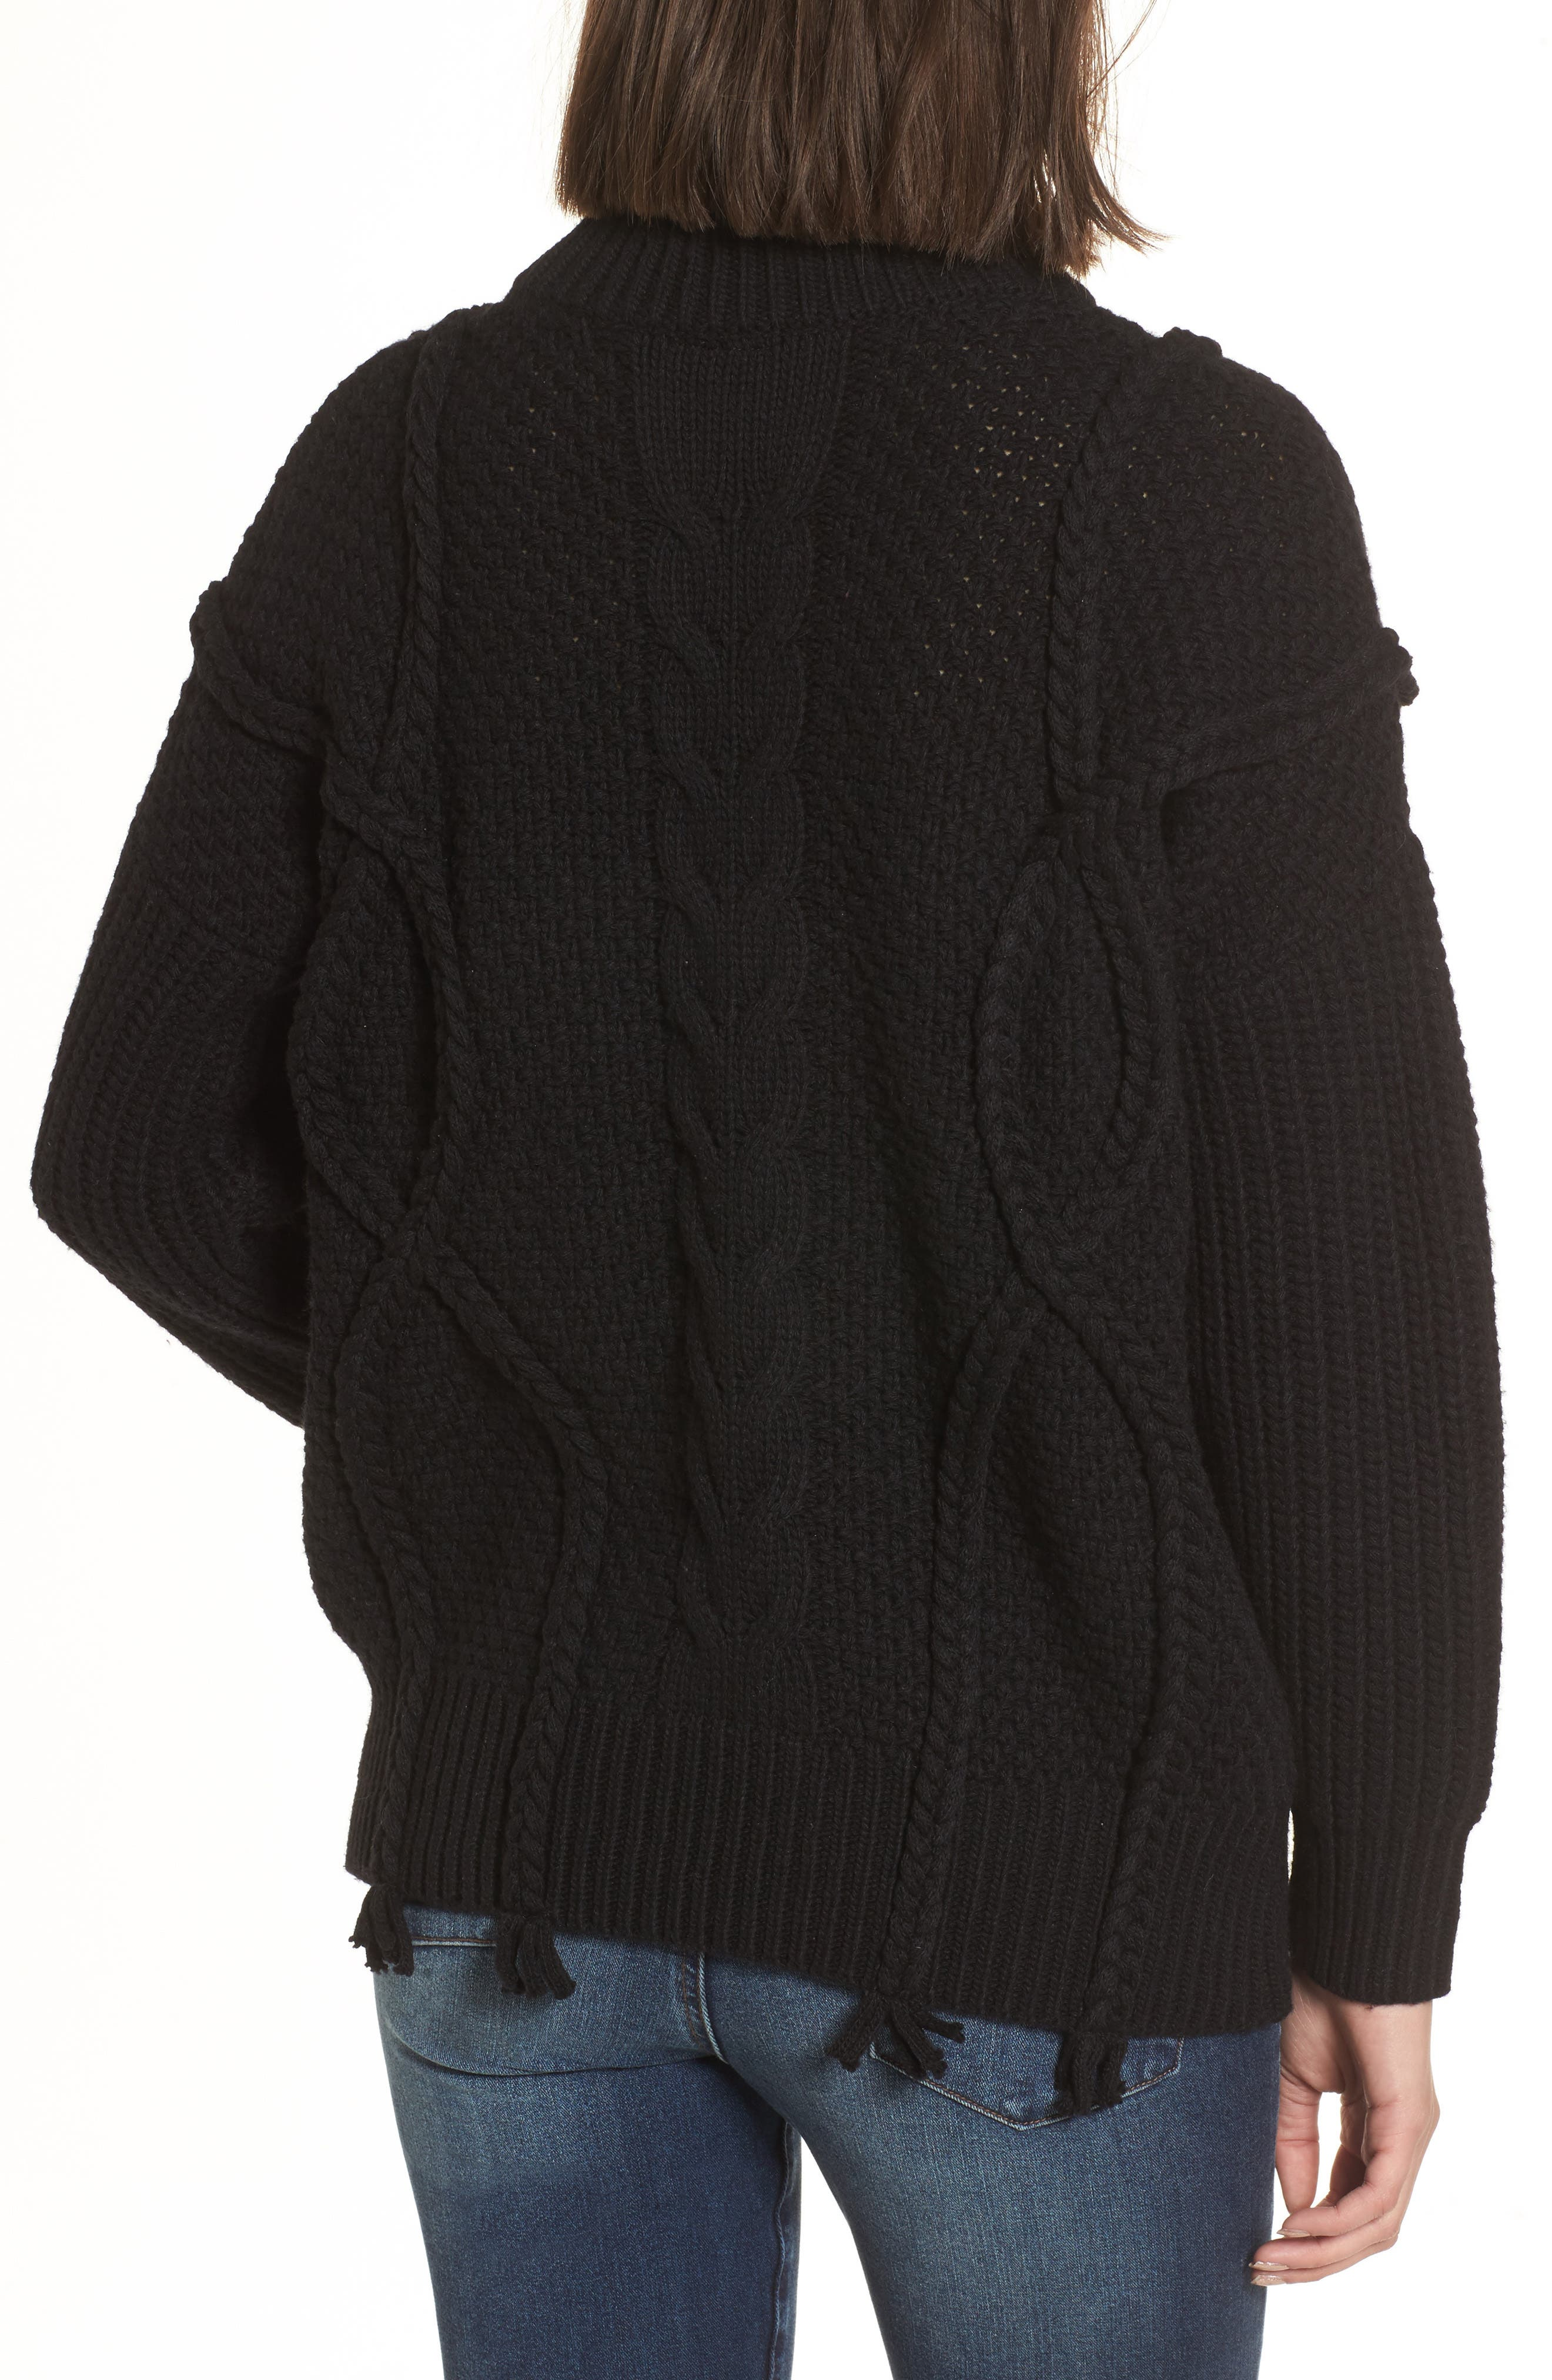 Plaited Cable Knit Sweater,                             Alternate thumbnail 2, color,                             001